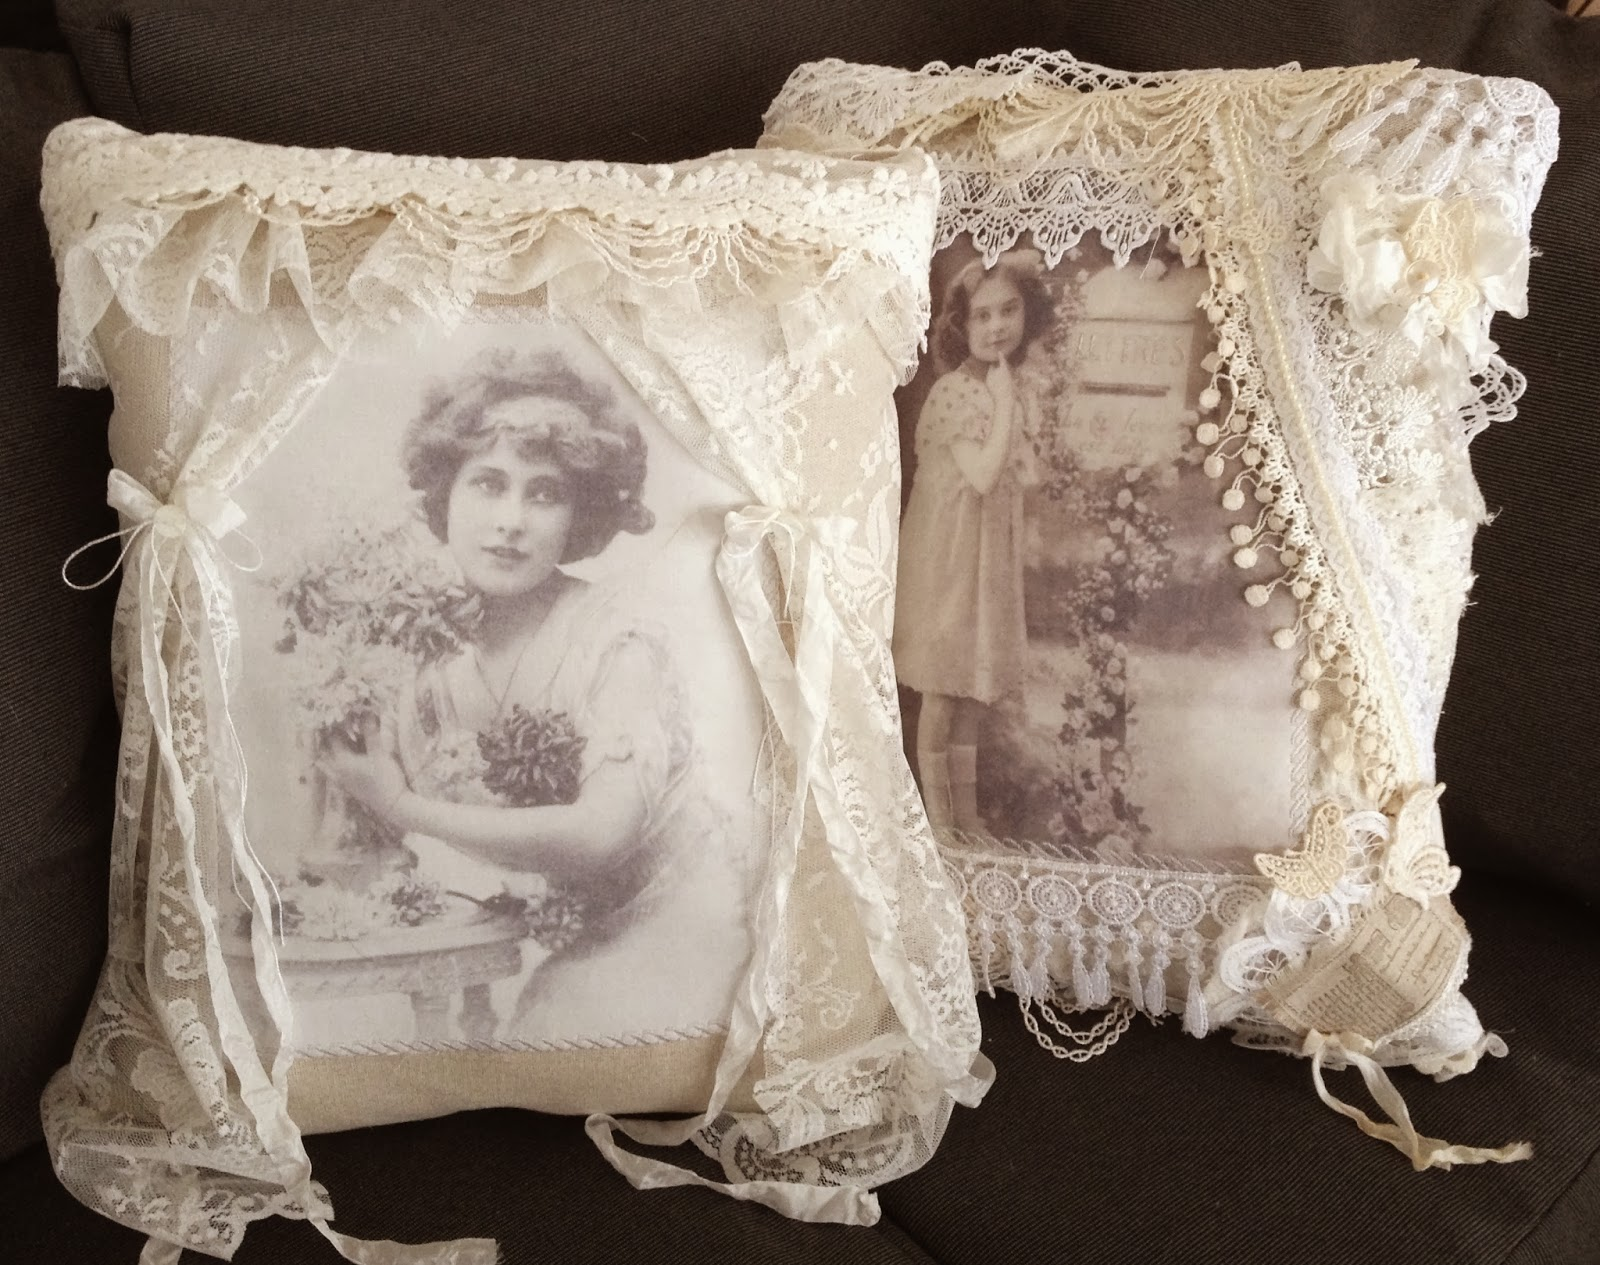 annes papercreations: Two more Shabby Chic pillows for my garden room